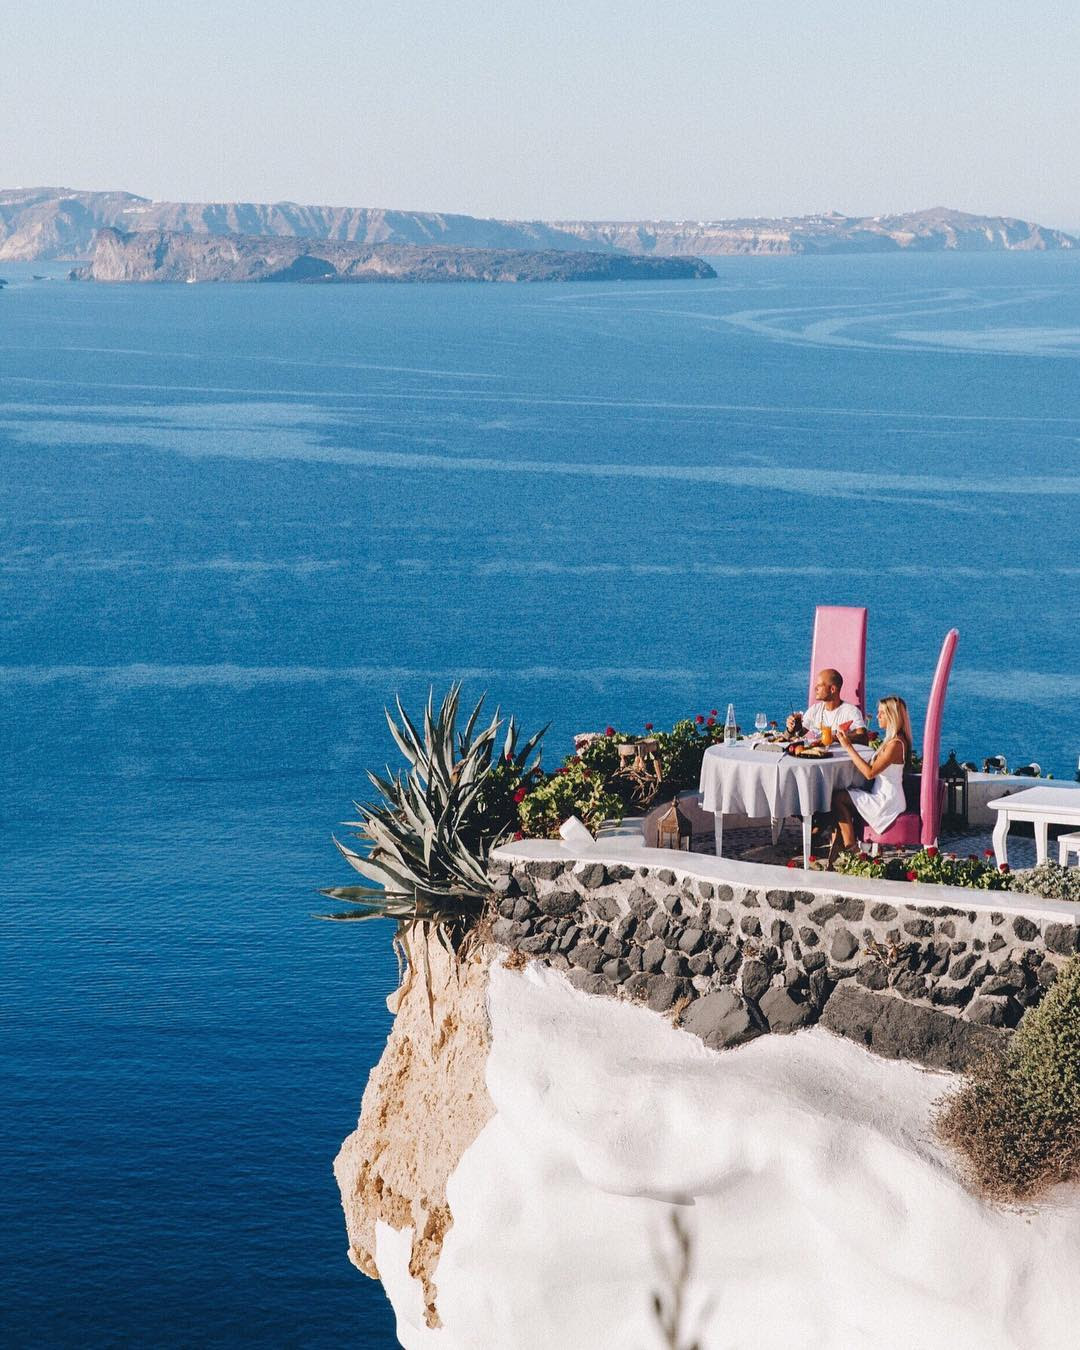 19 Most Romantic Honeymoon Destinations in the World  Add